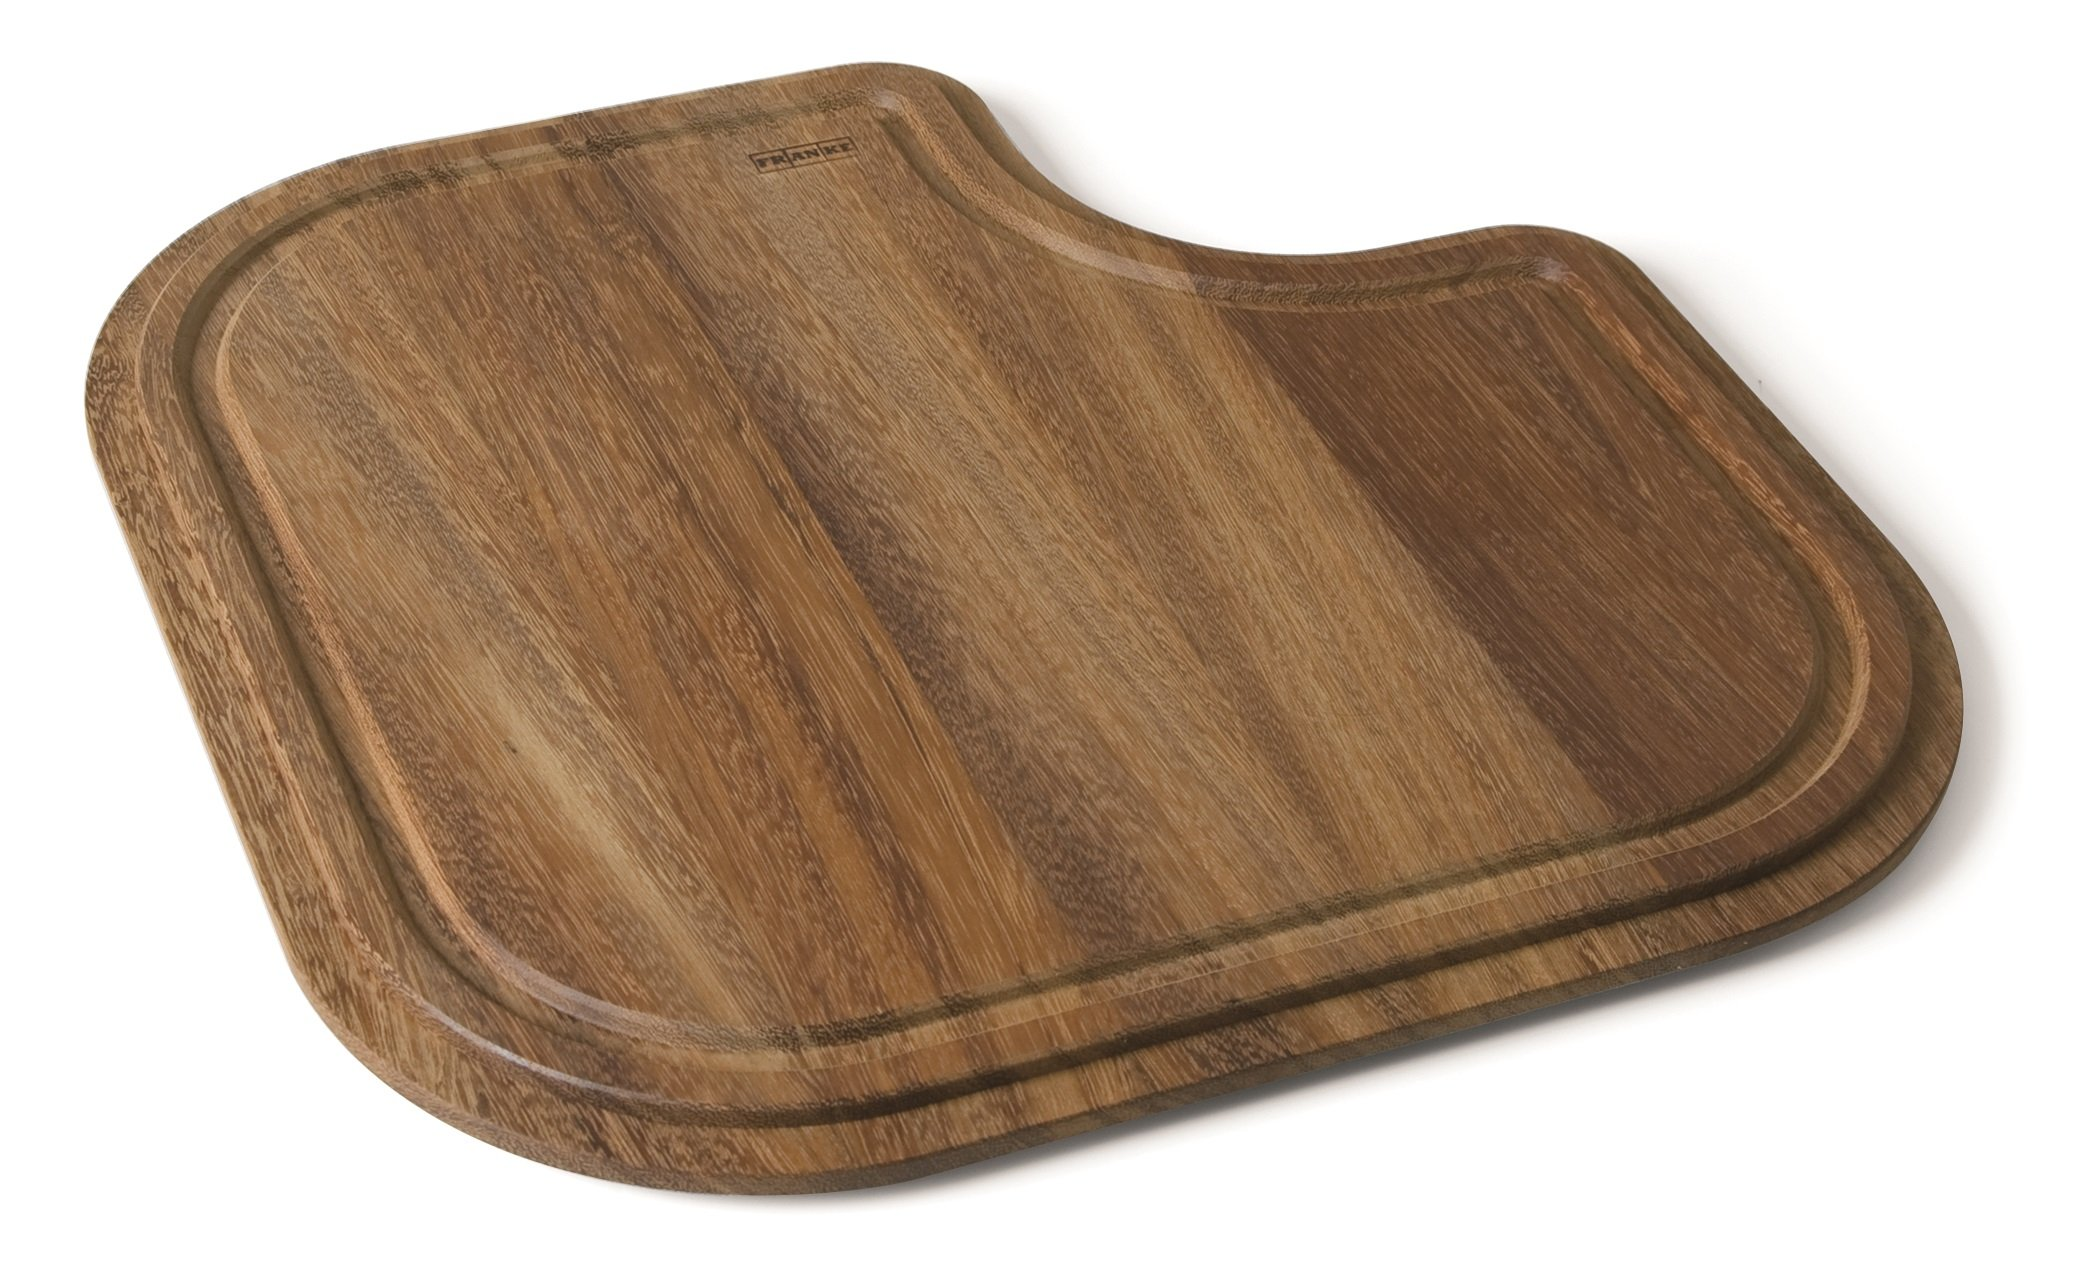 Franke EuroPro Solid Wood Cutting Board for GNX11016/GNX120 Sinks by Franke